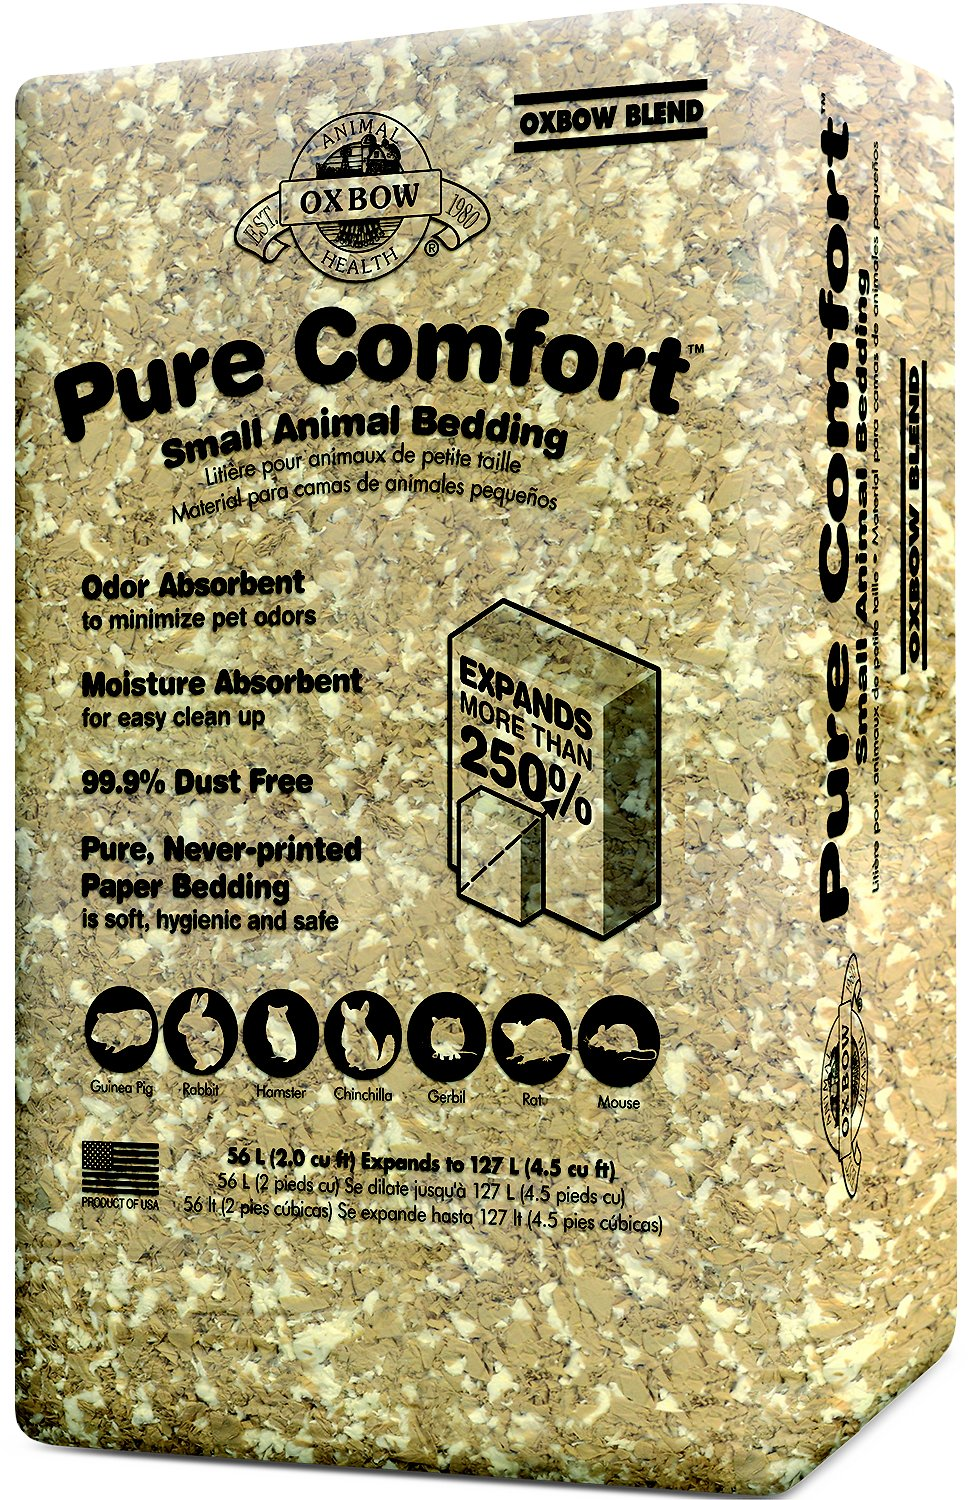 Oxbow Pure Comfort Small Animal Bedding, Oxbow Blend Image